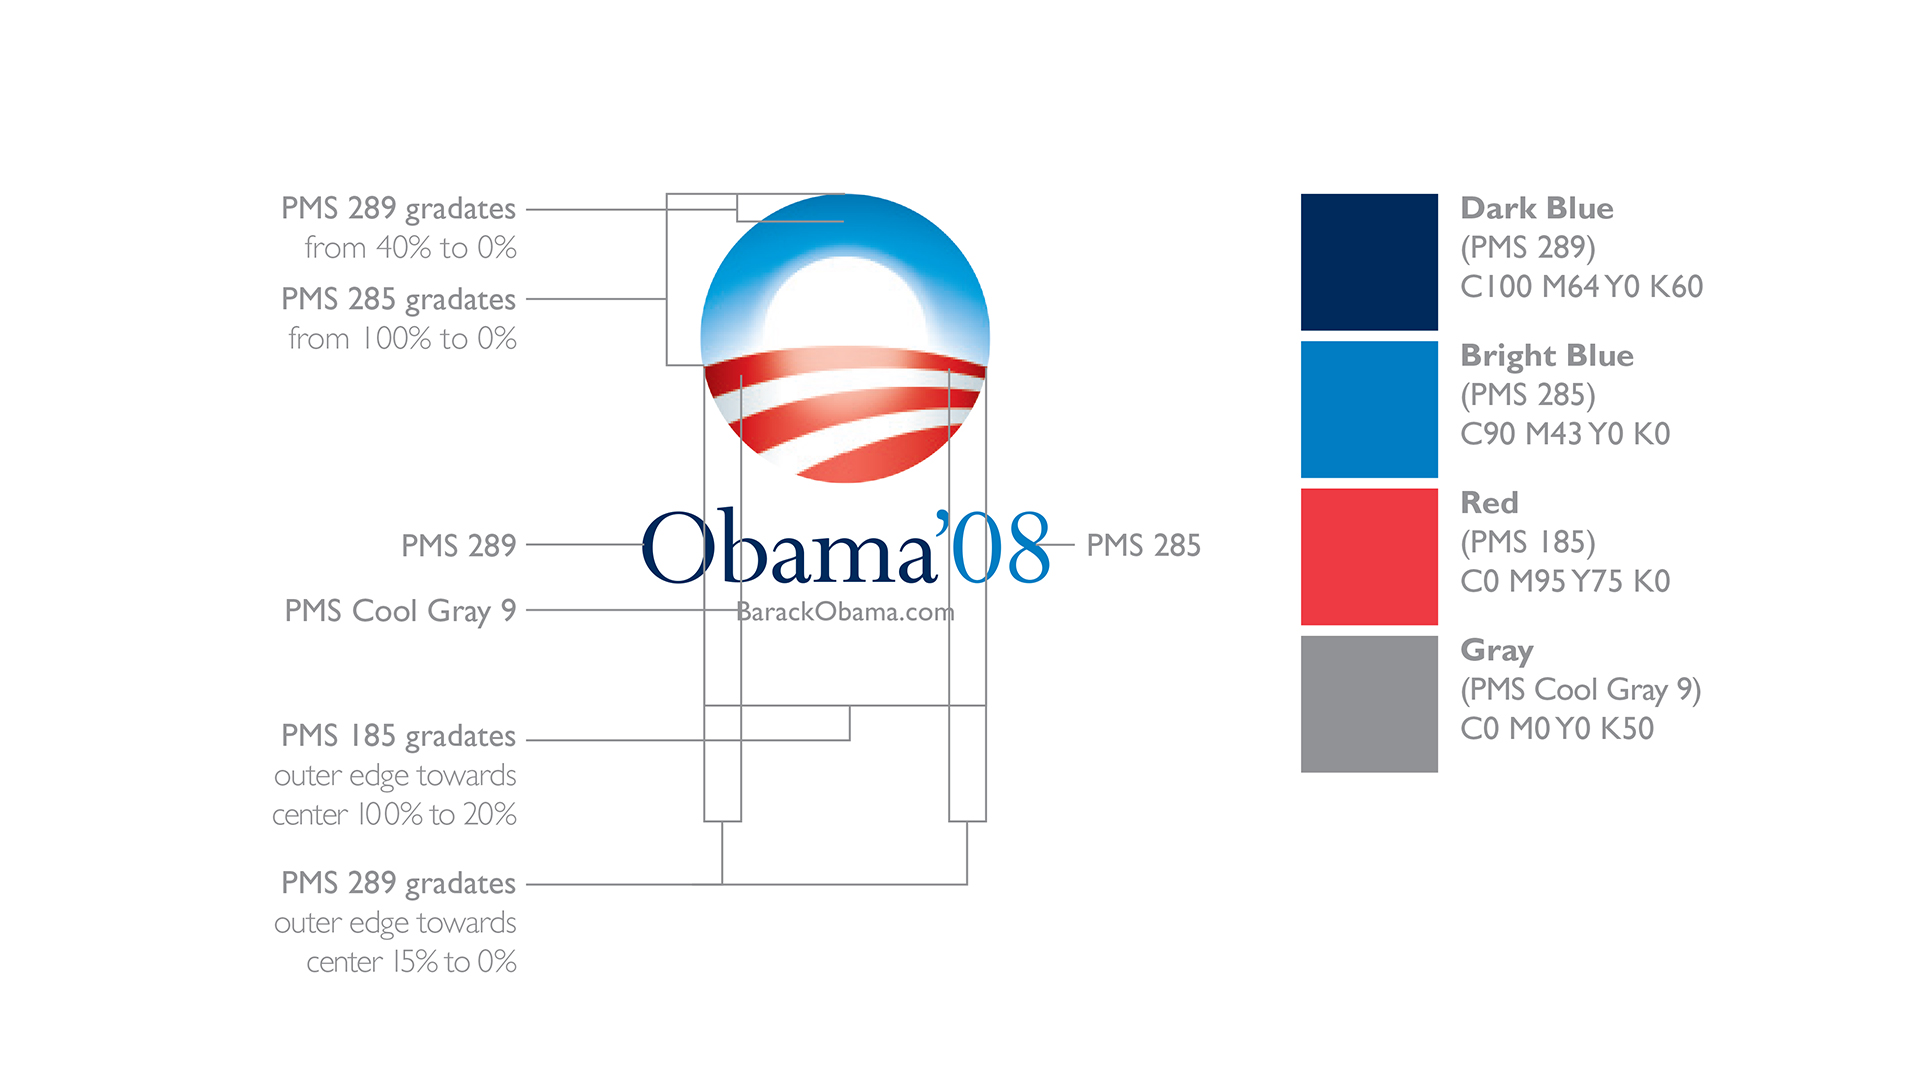 Excerpt from the Obama '08 Identity Guidelines